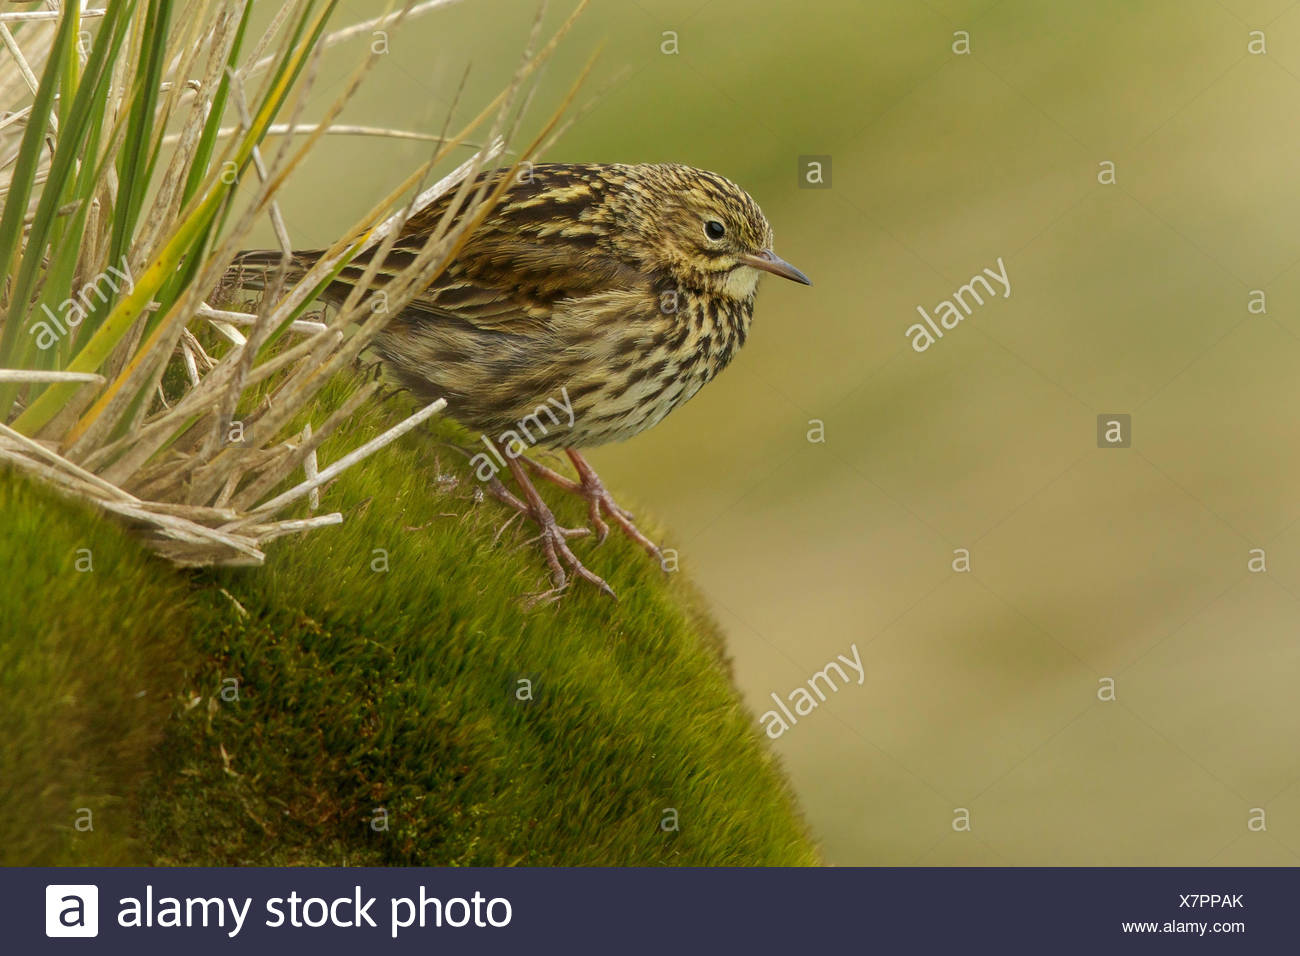 South Georgia Pipit (Anthus antarcticus) perched on tussock grass on South Georgia Island. - Stock Image